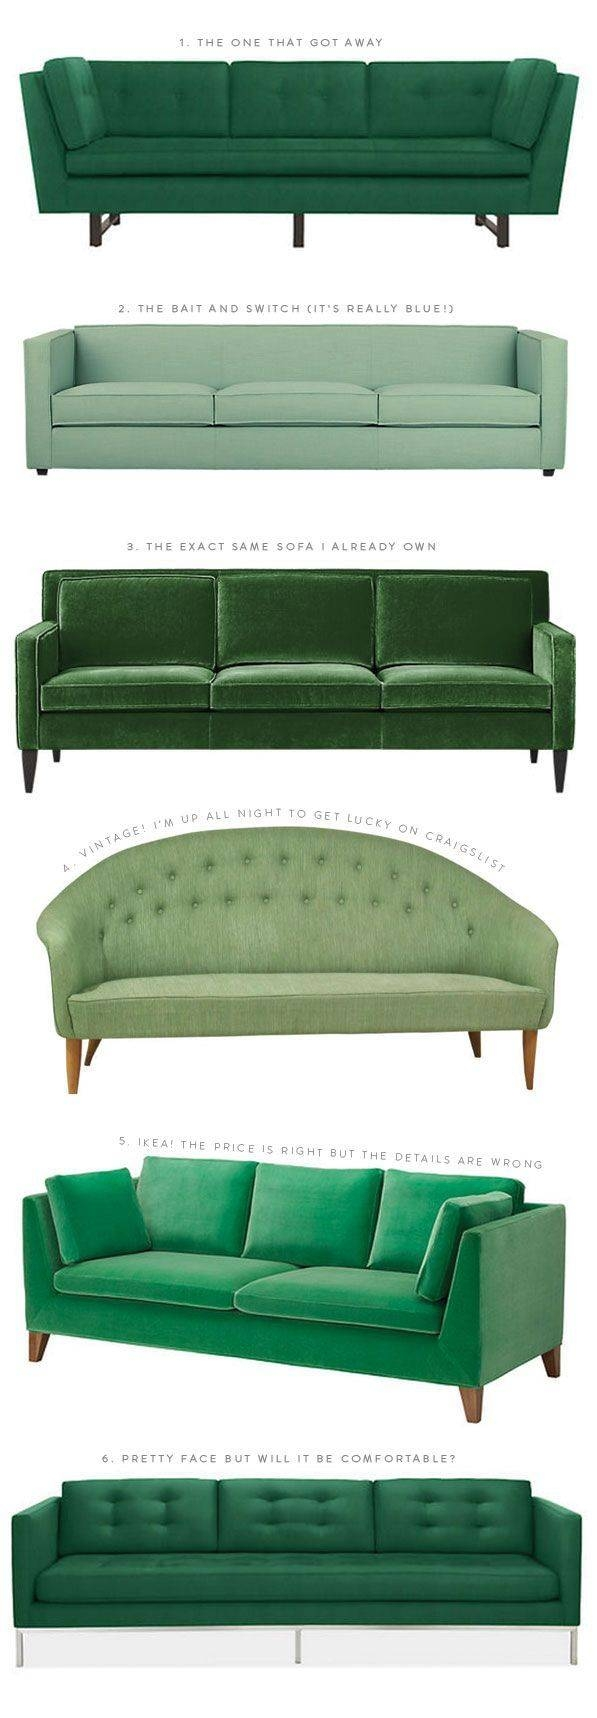 307 Best Sofas & Chairs   Ahhhhh! Images On Pinterest | Sofas Inside Chintz Covered Sofas (Photo 18 of 30)